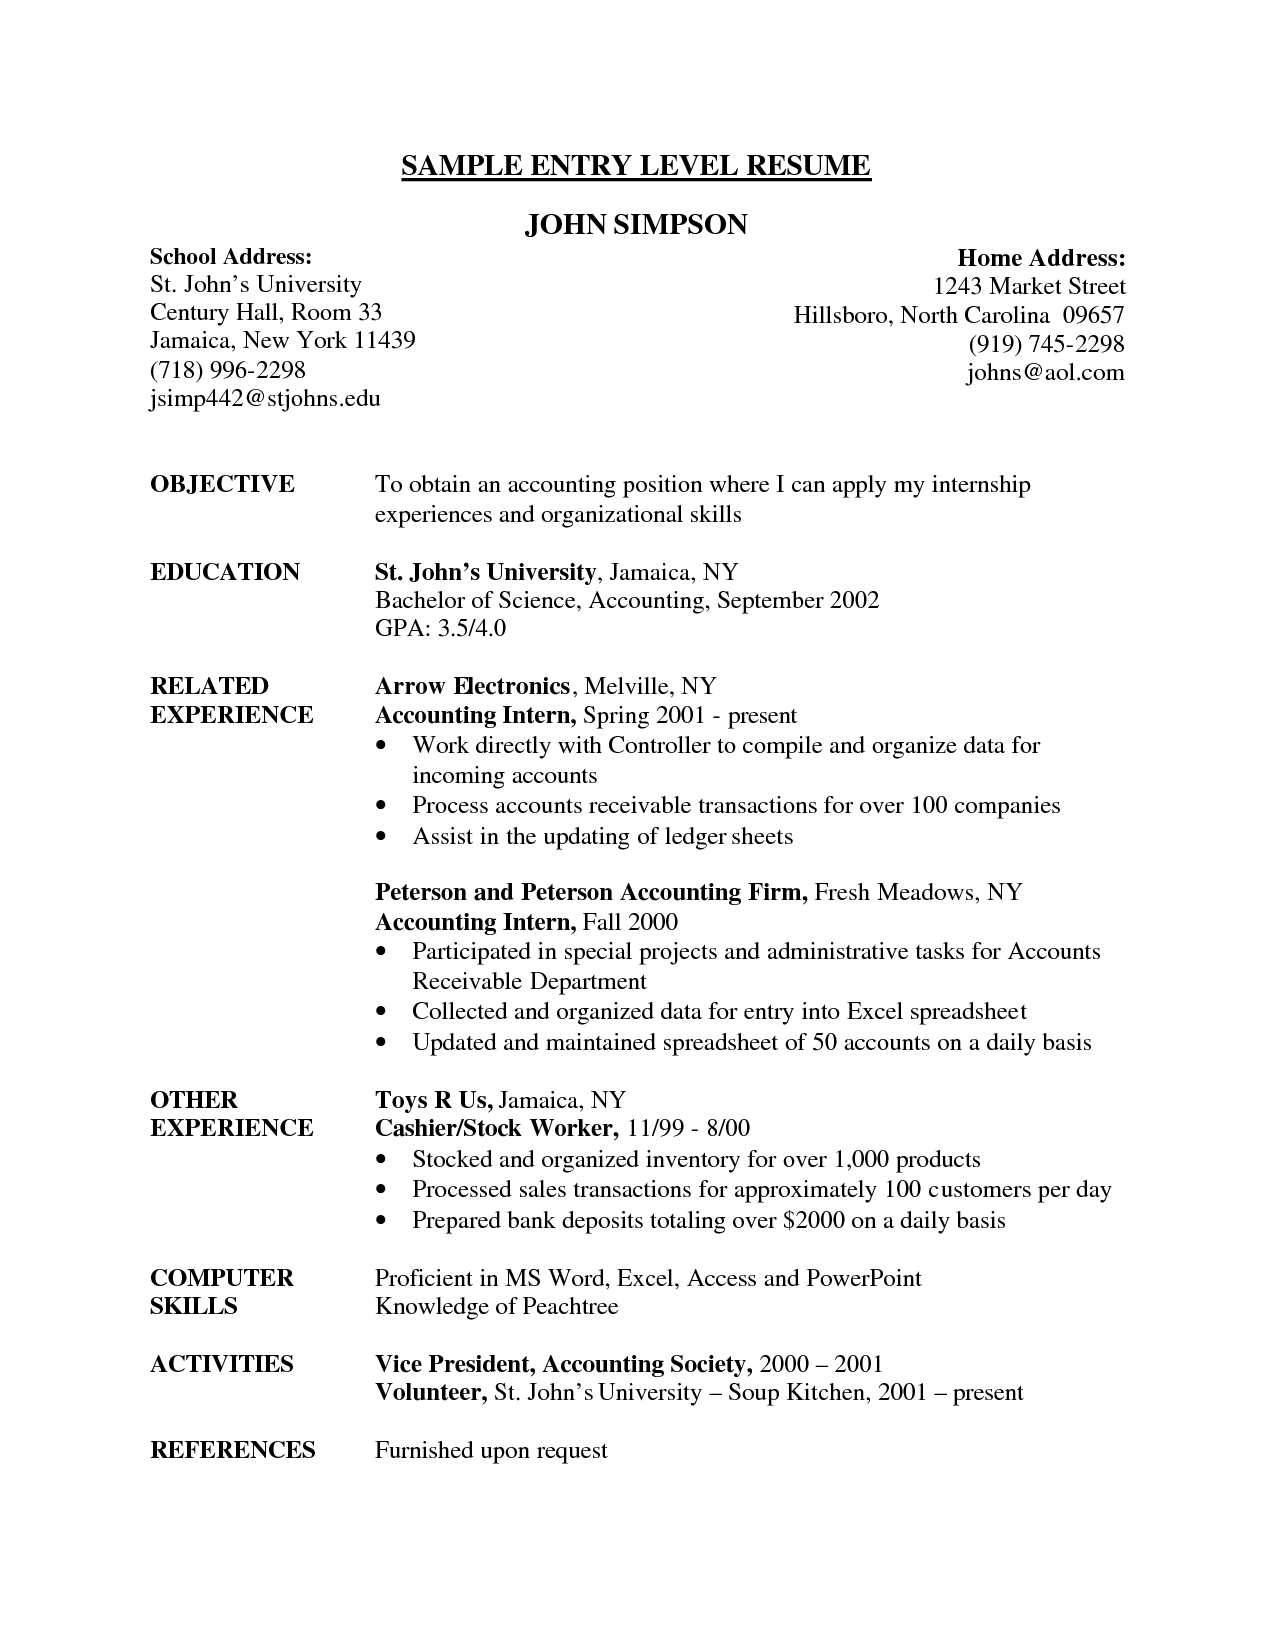 Sample Objective For Resume Entry Level Format Resumes Example